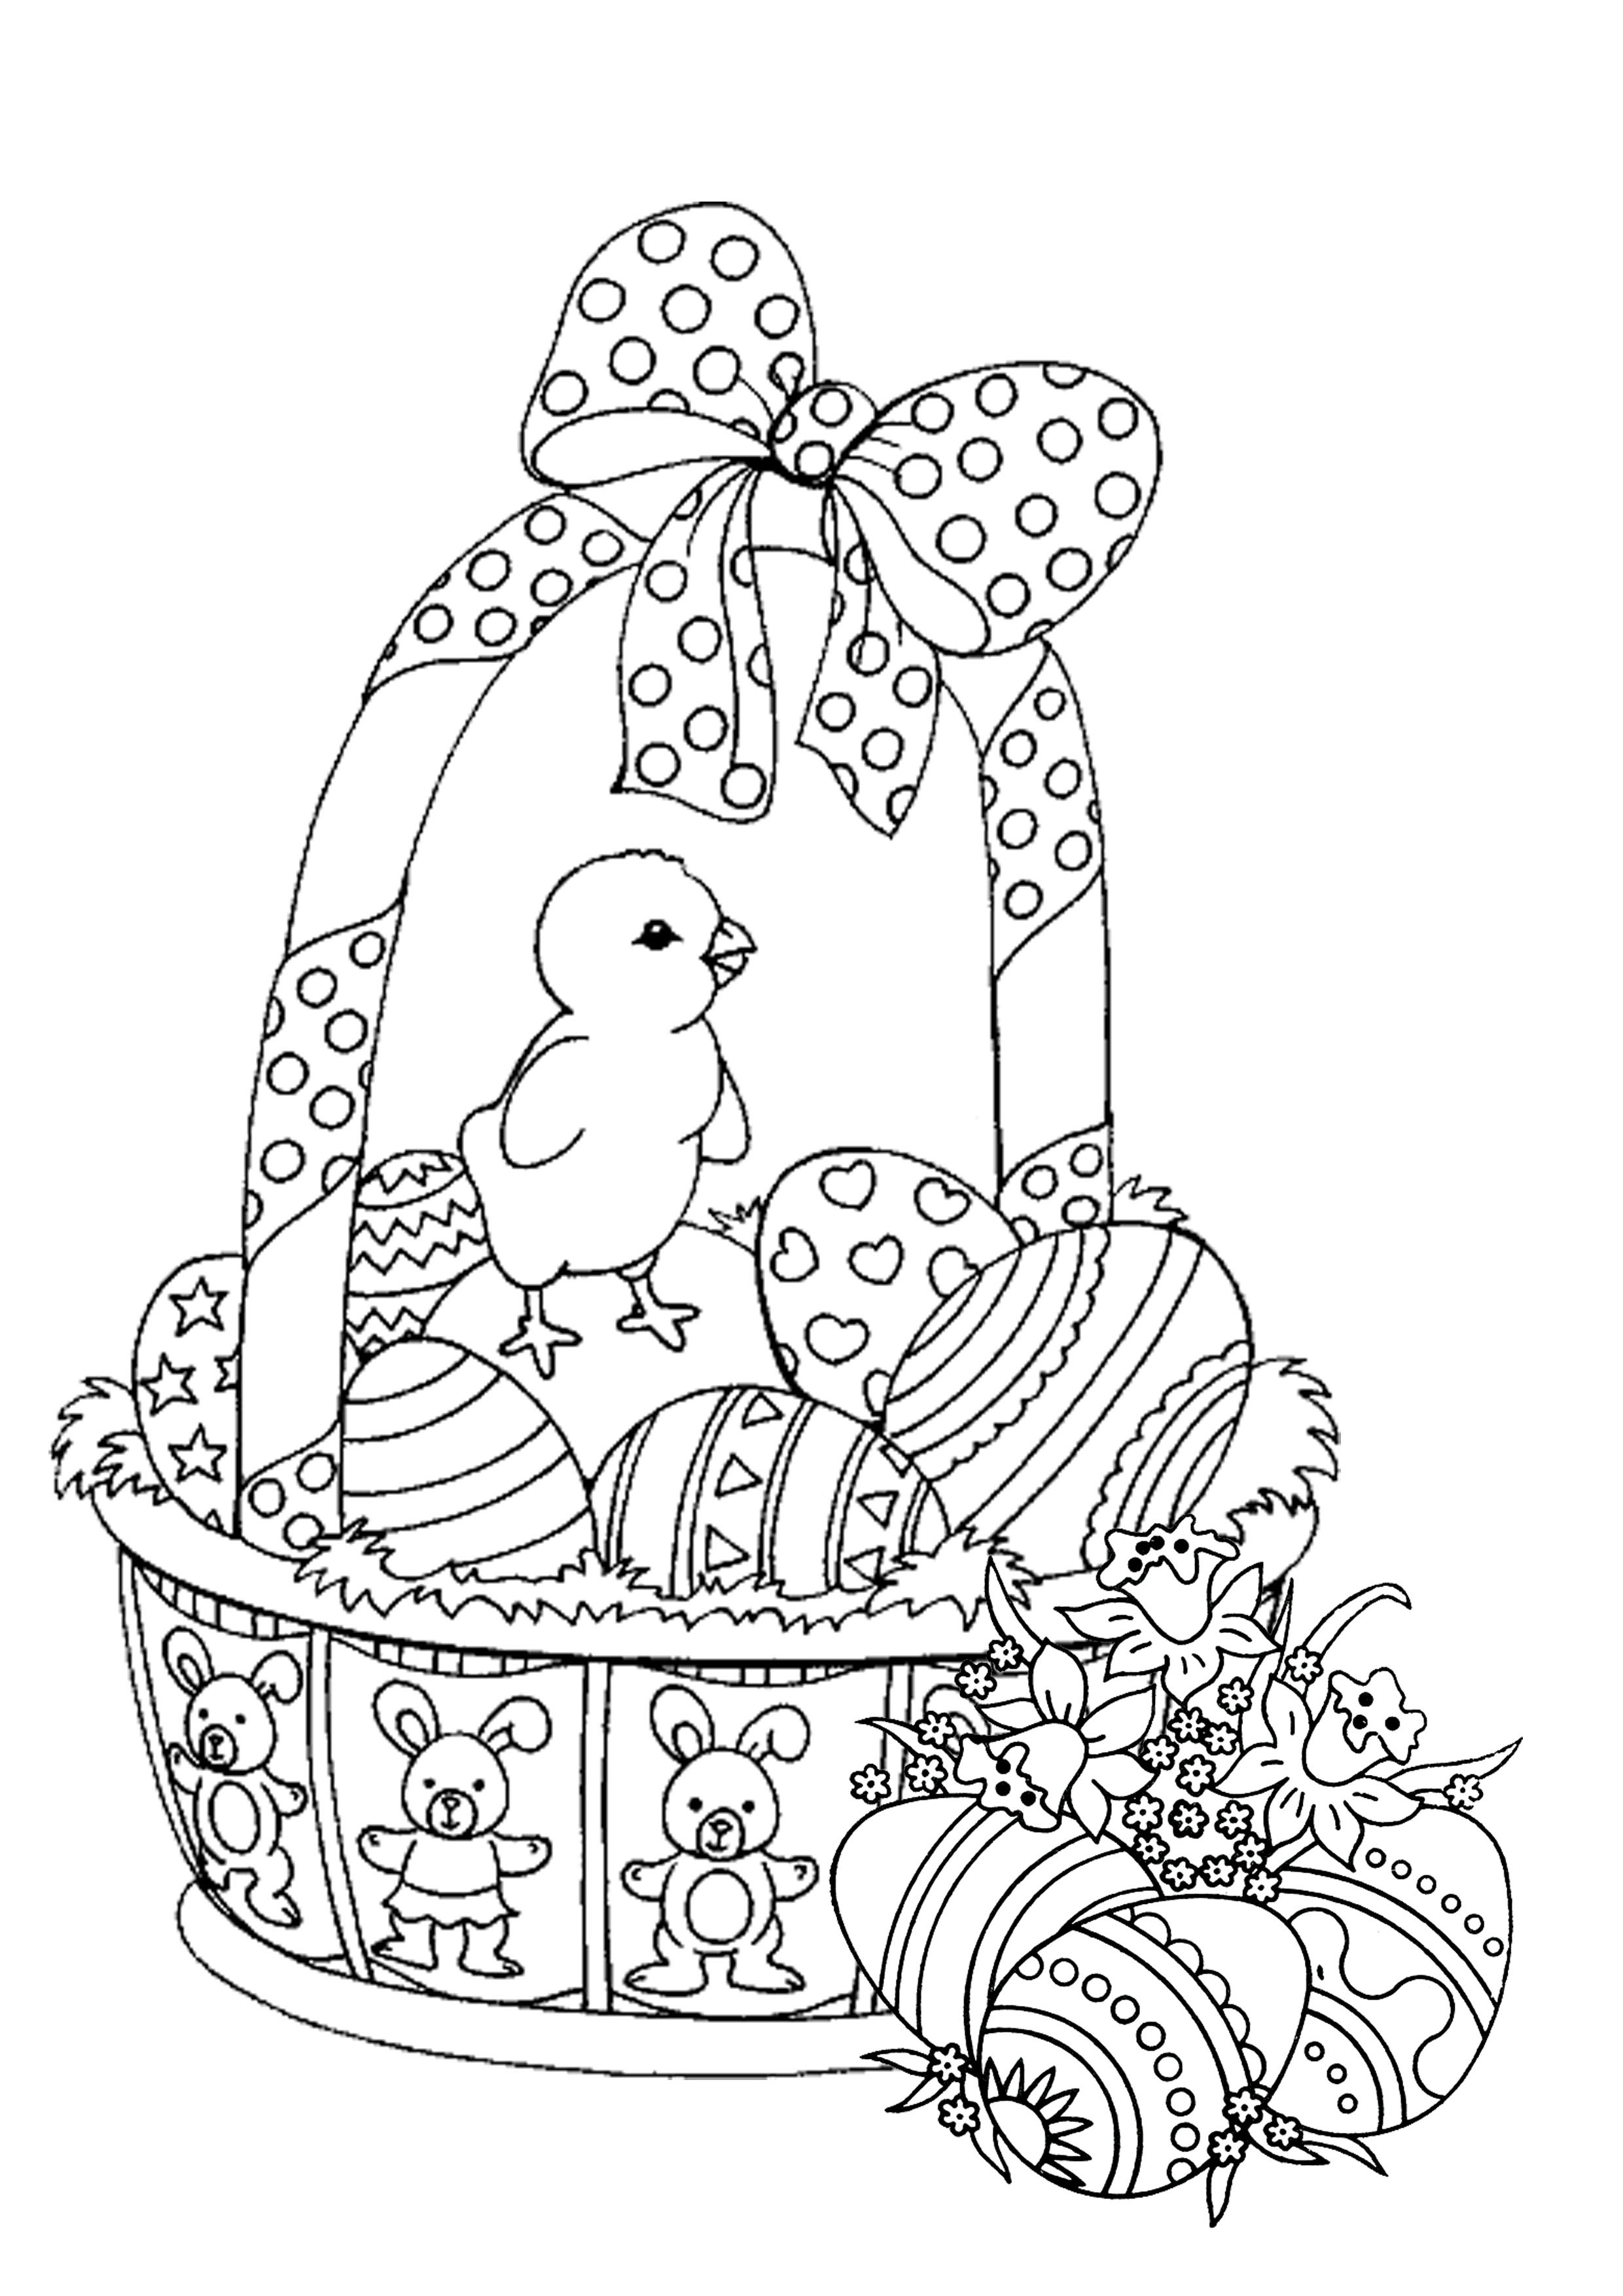 Coloring Book Pages Easter  Easter Coloring Pages for Adults Best Coloring Pages For